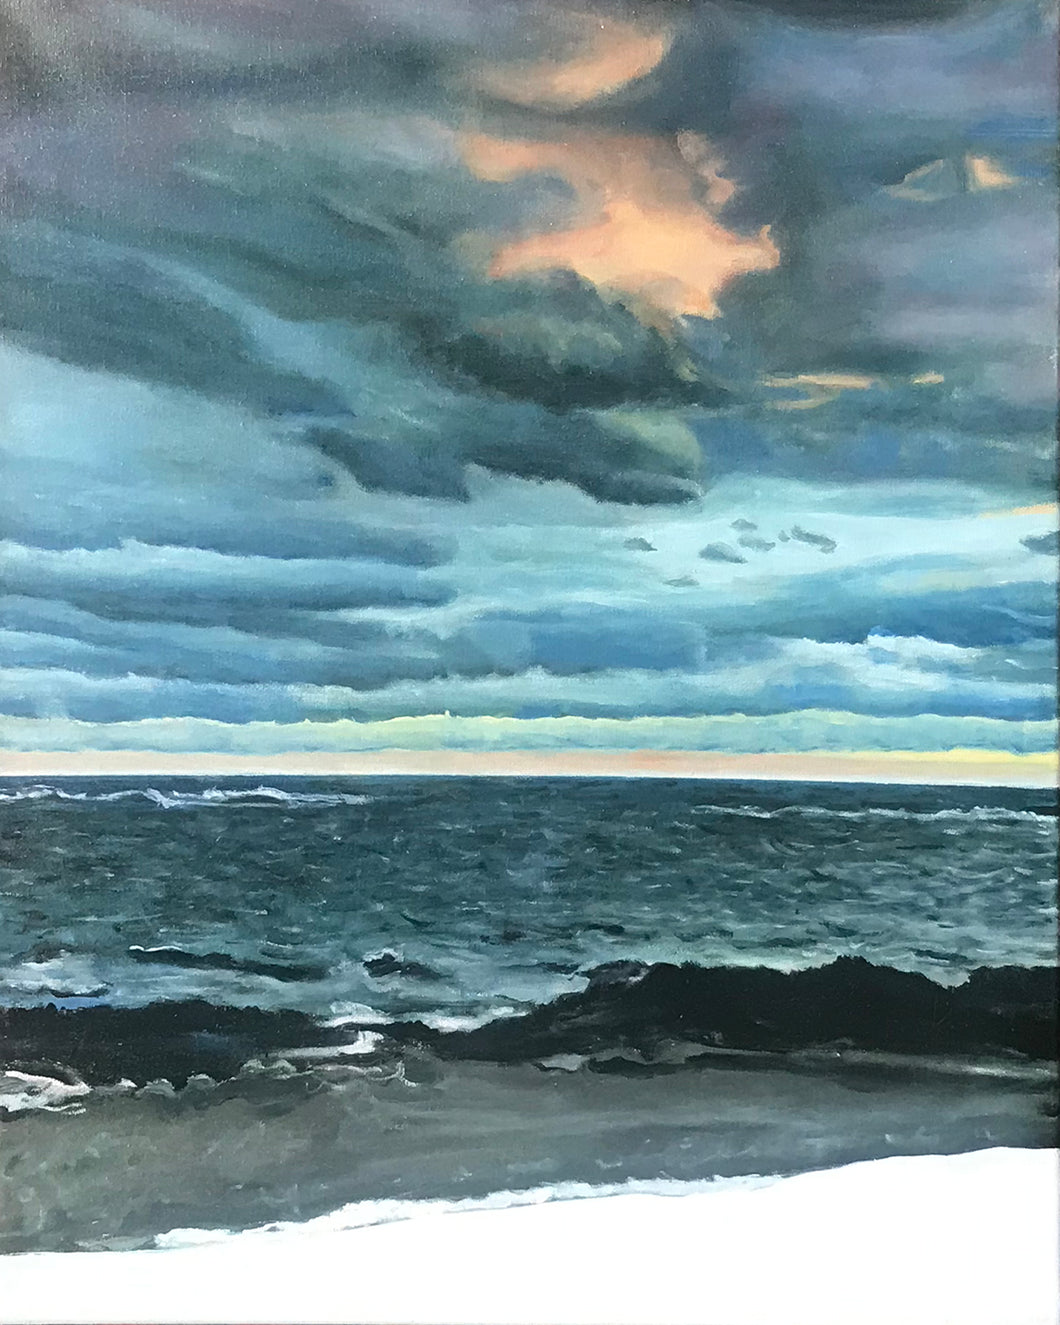 Winter Sunset - Biddeford Pool.....oil on linen - 16